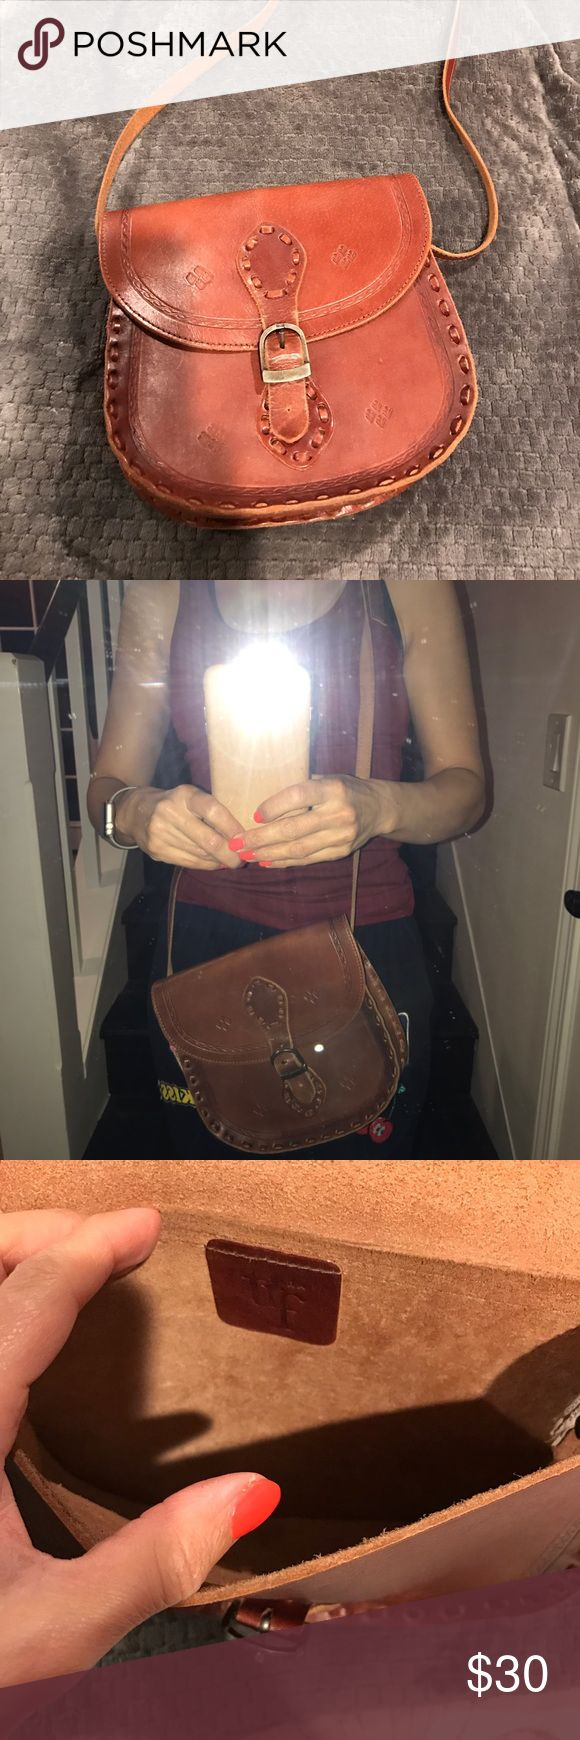 Zara handbag crossbody cross body bags Pre owned in very good condition. Used 3 times. Zara Bags Crossbody Bags